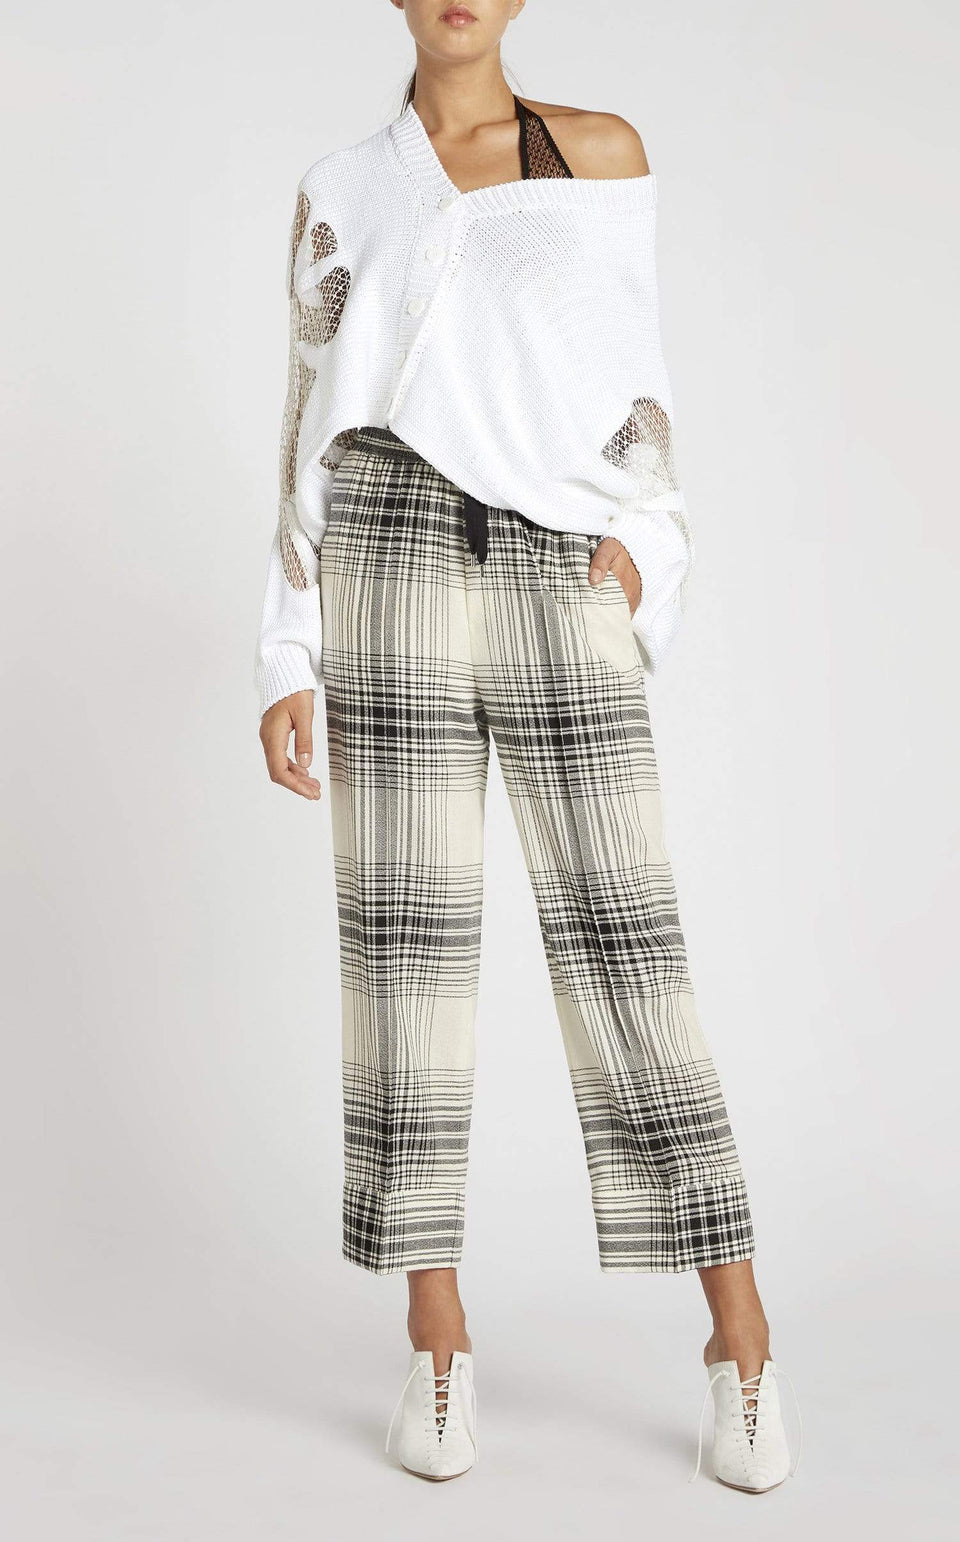 Coles Trouser In Monochrome from Roland Mouret